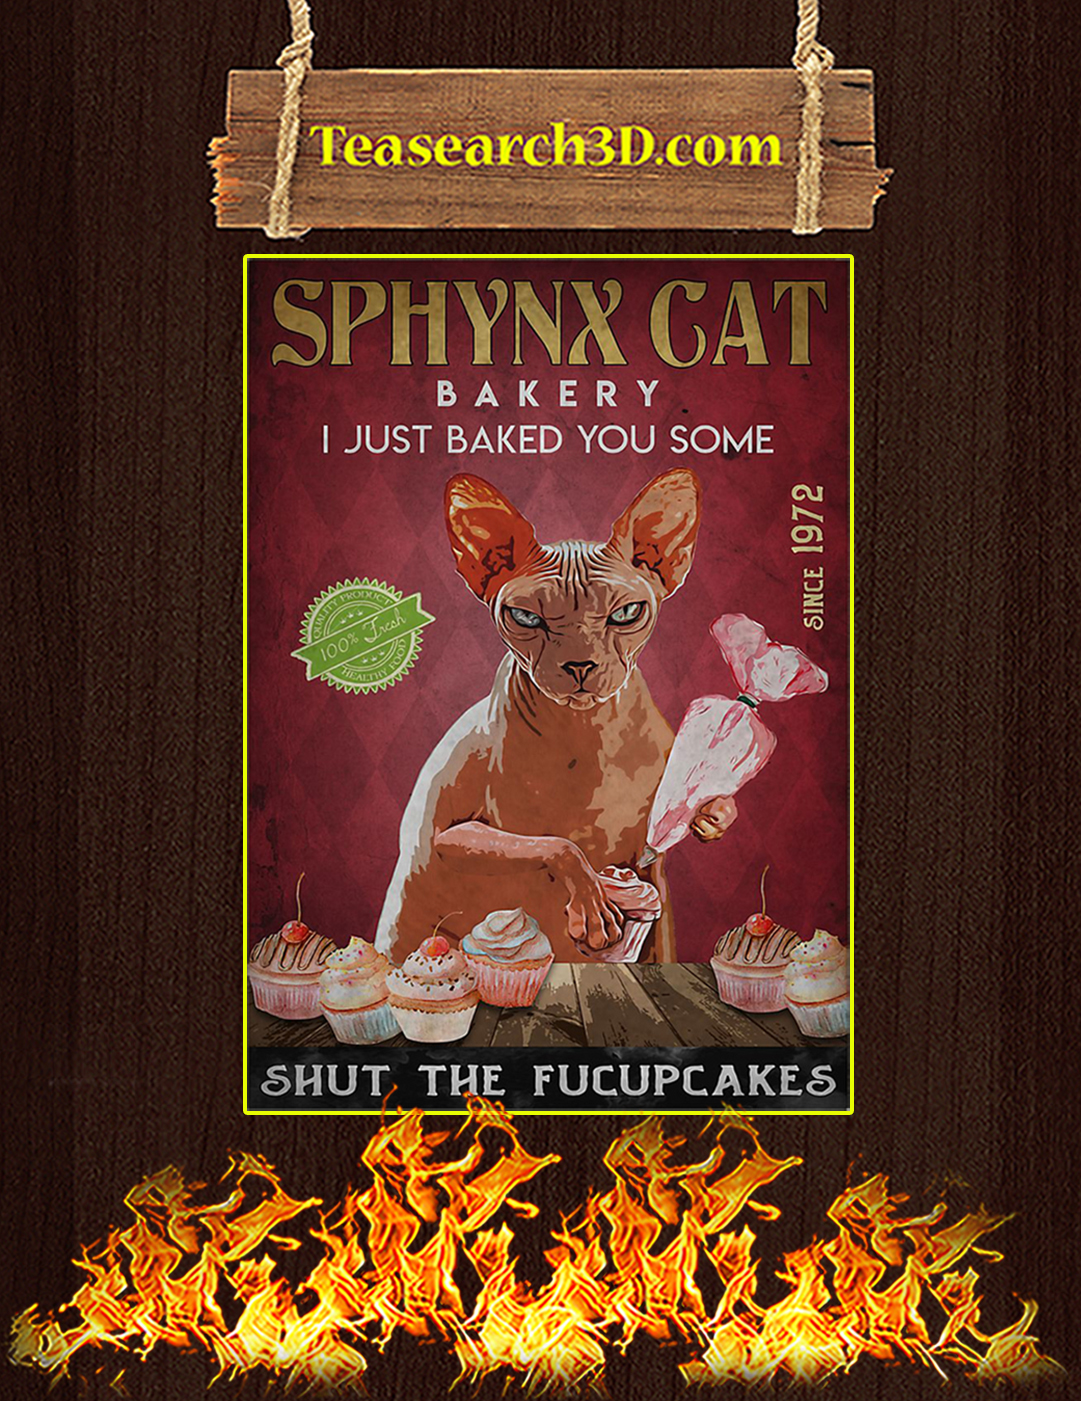 Sphynx Cat Bakery I Just Baked You Some Shut The Fucupcakes Poster A2